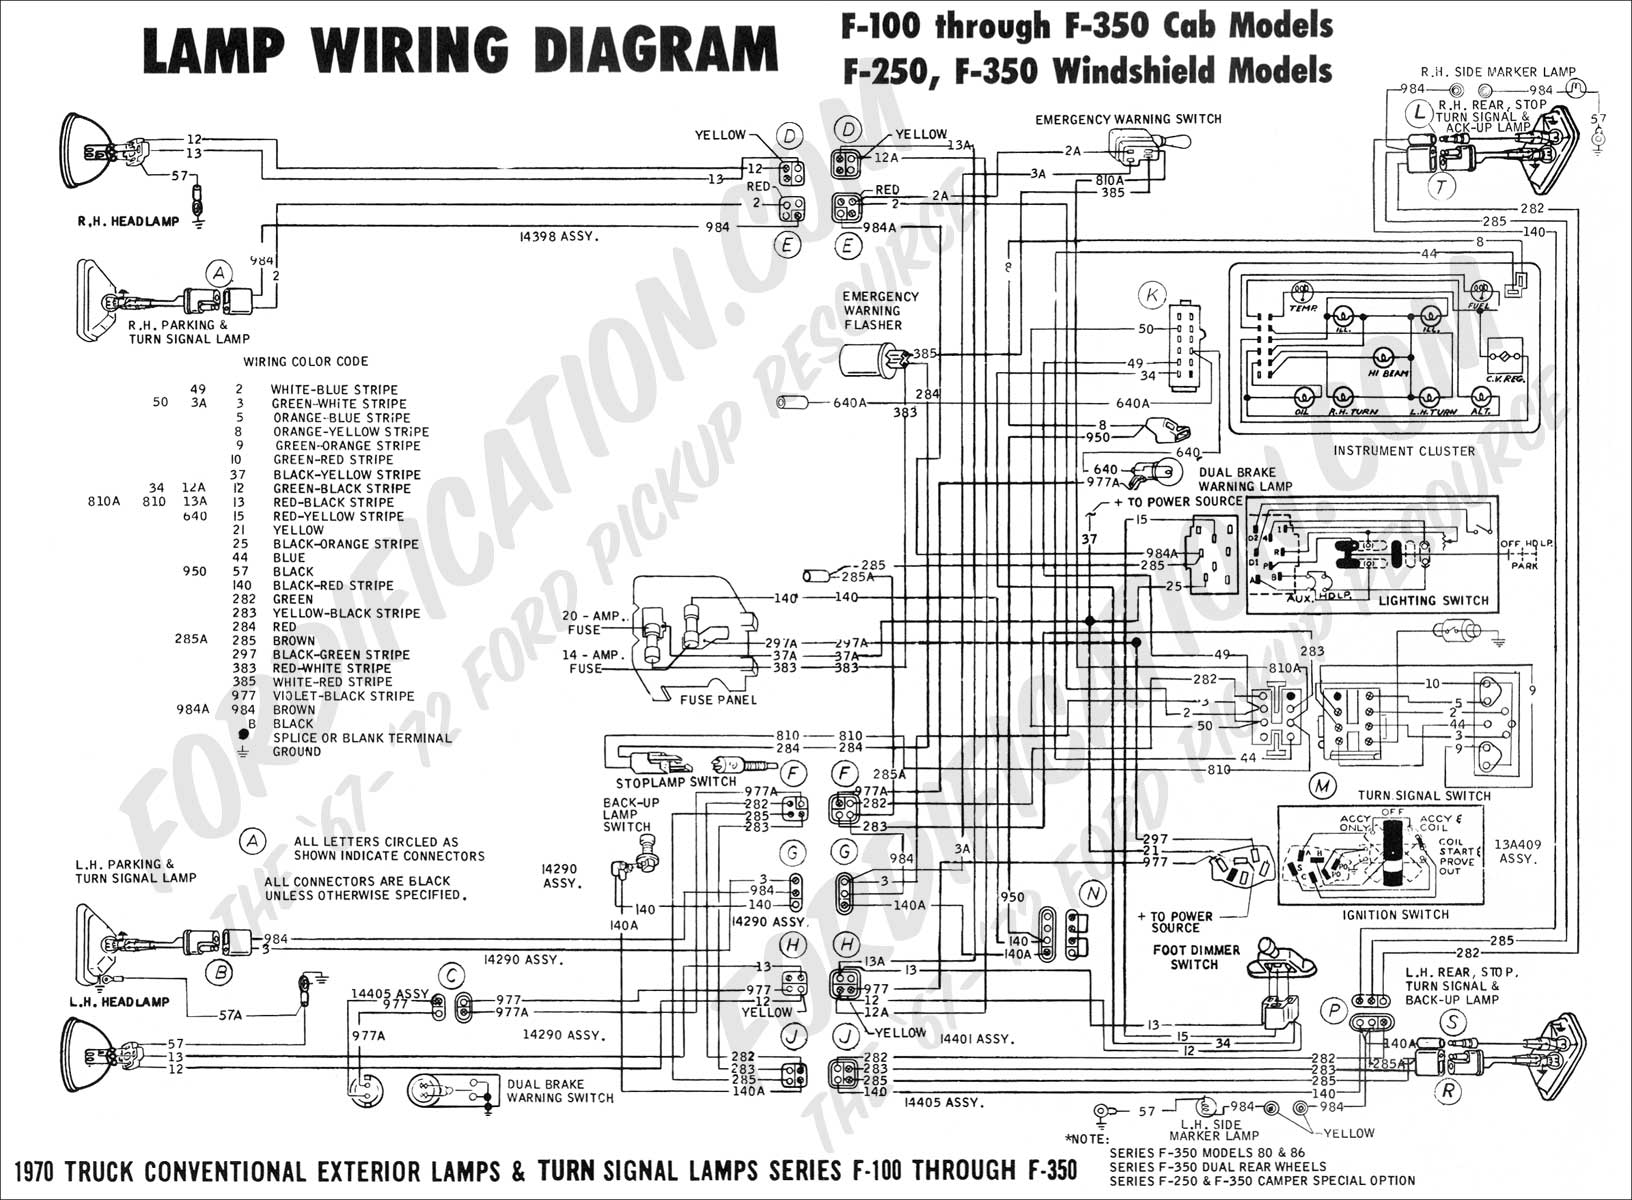 1978 Corvette Steering Column Diagram additionally 7nl4f Wrangler Hi Recently Purchased 1990 Jeep Wrangler further Catalog3 also Showthread moreover 2001 Ford F150 Turn Signal Wiring Diagram Universal Readingrat. on 1972 chevy ignition wiring diagram